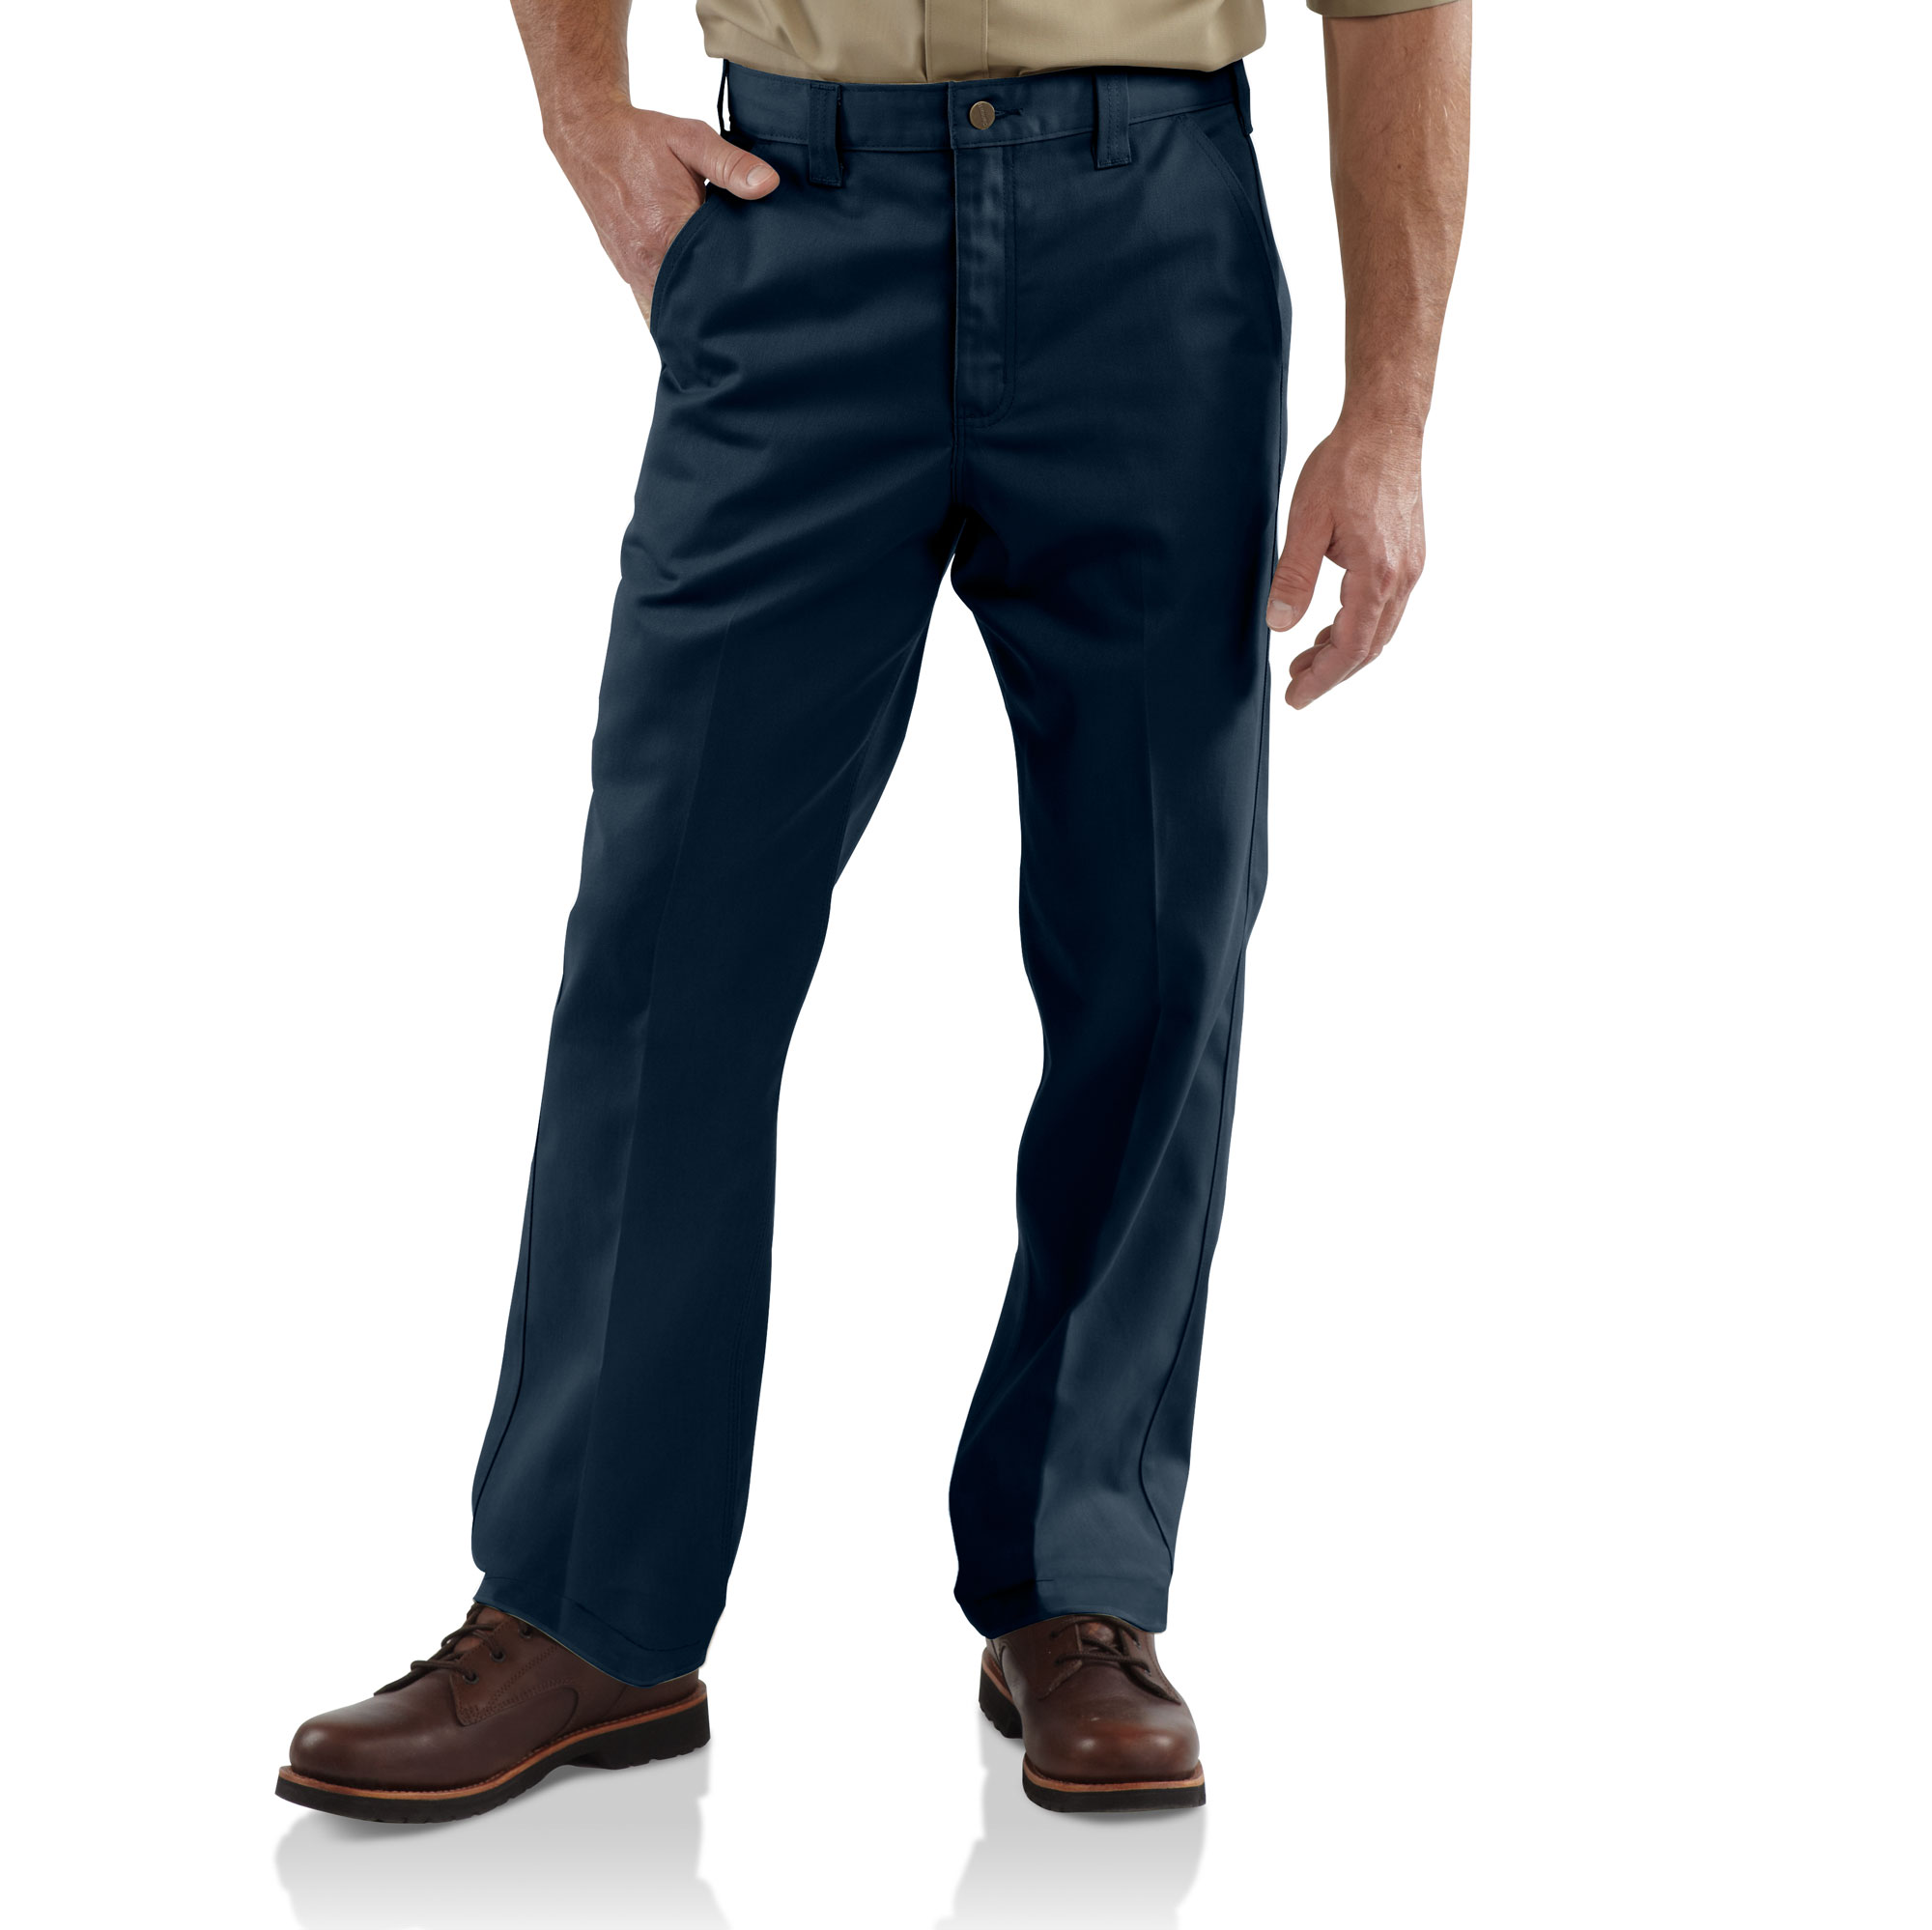 Men's Carhartt Pants: Vermont Gear - Farm-Way